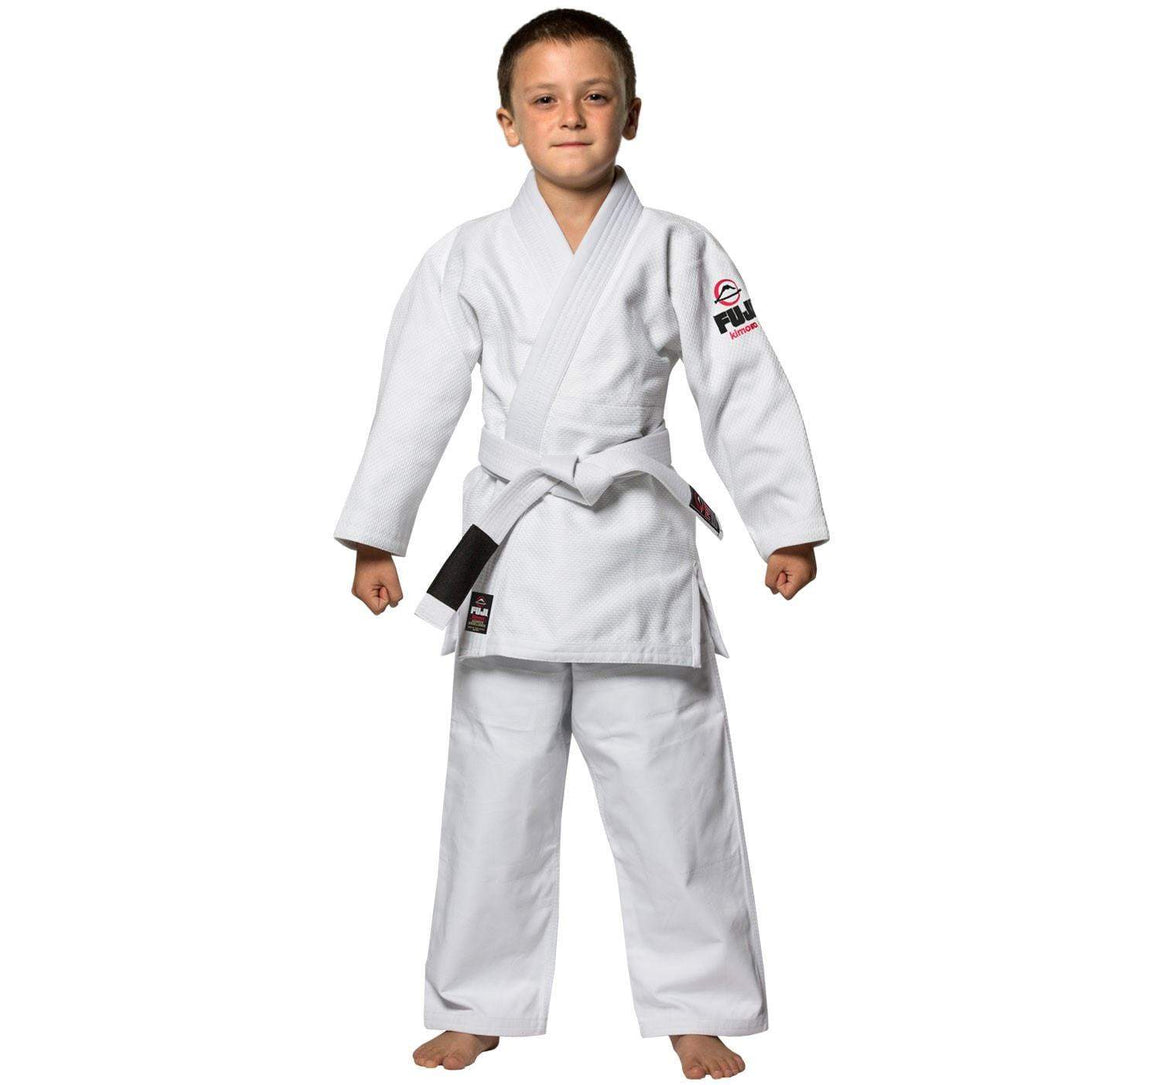 Fuji All Around Kids BJJ Gi - White